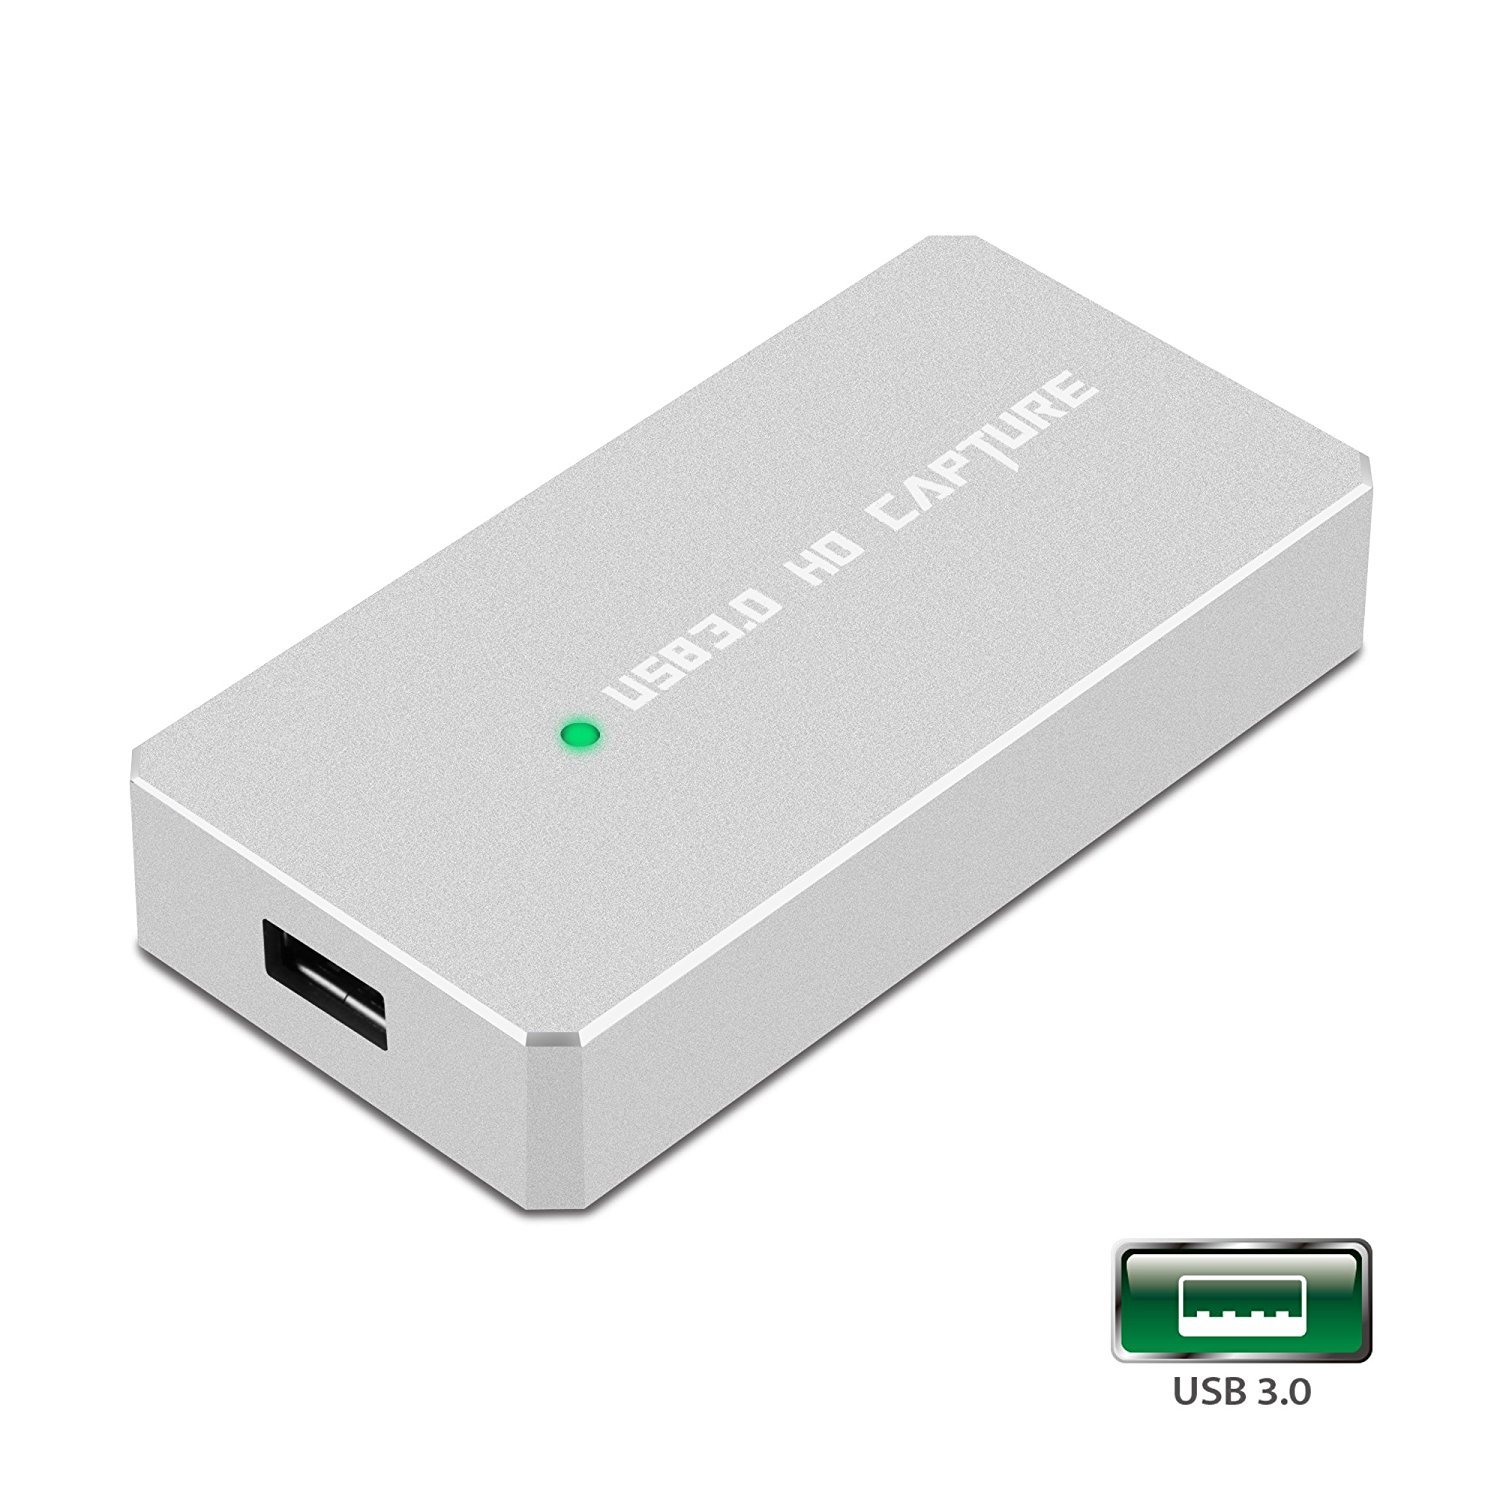 Y&H HDMI Game Capture Card USB 3.0 HD 1080P Video Capture with OBS for Live Video Streaming for PS3 PS4 Xbox One 360 Wii U,Compatible with Windows Linux Os X System【Metal Shell】